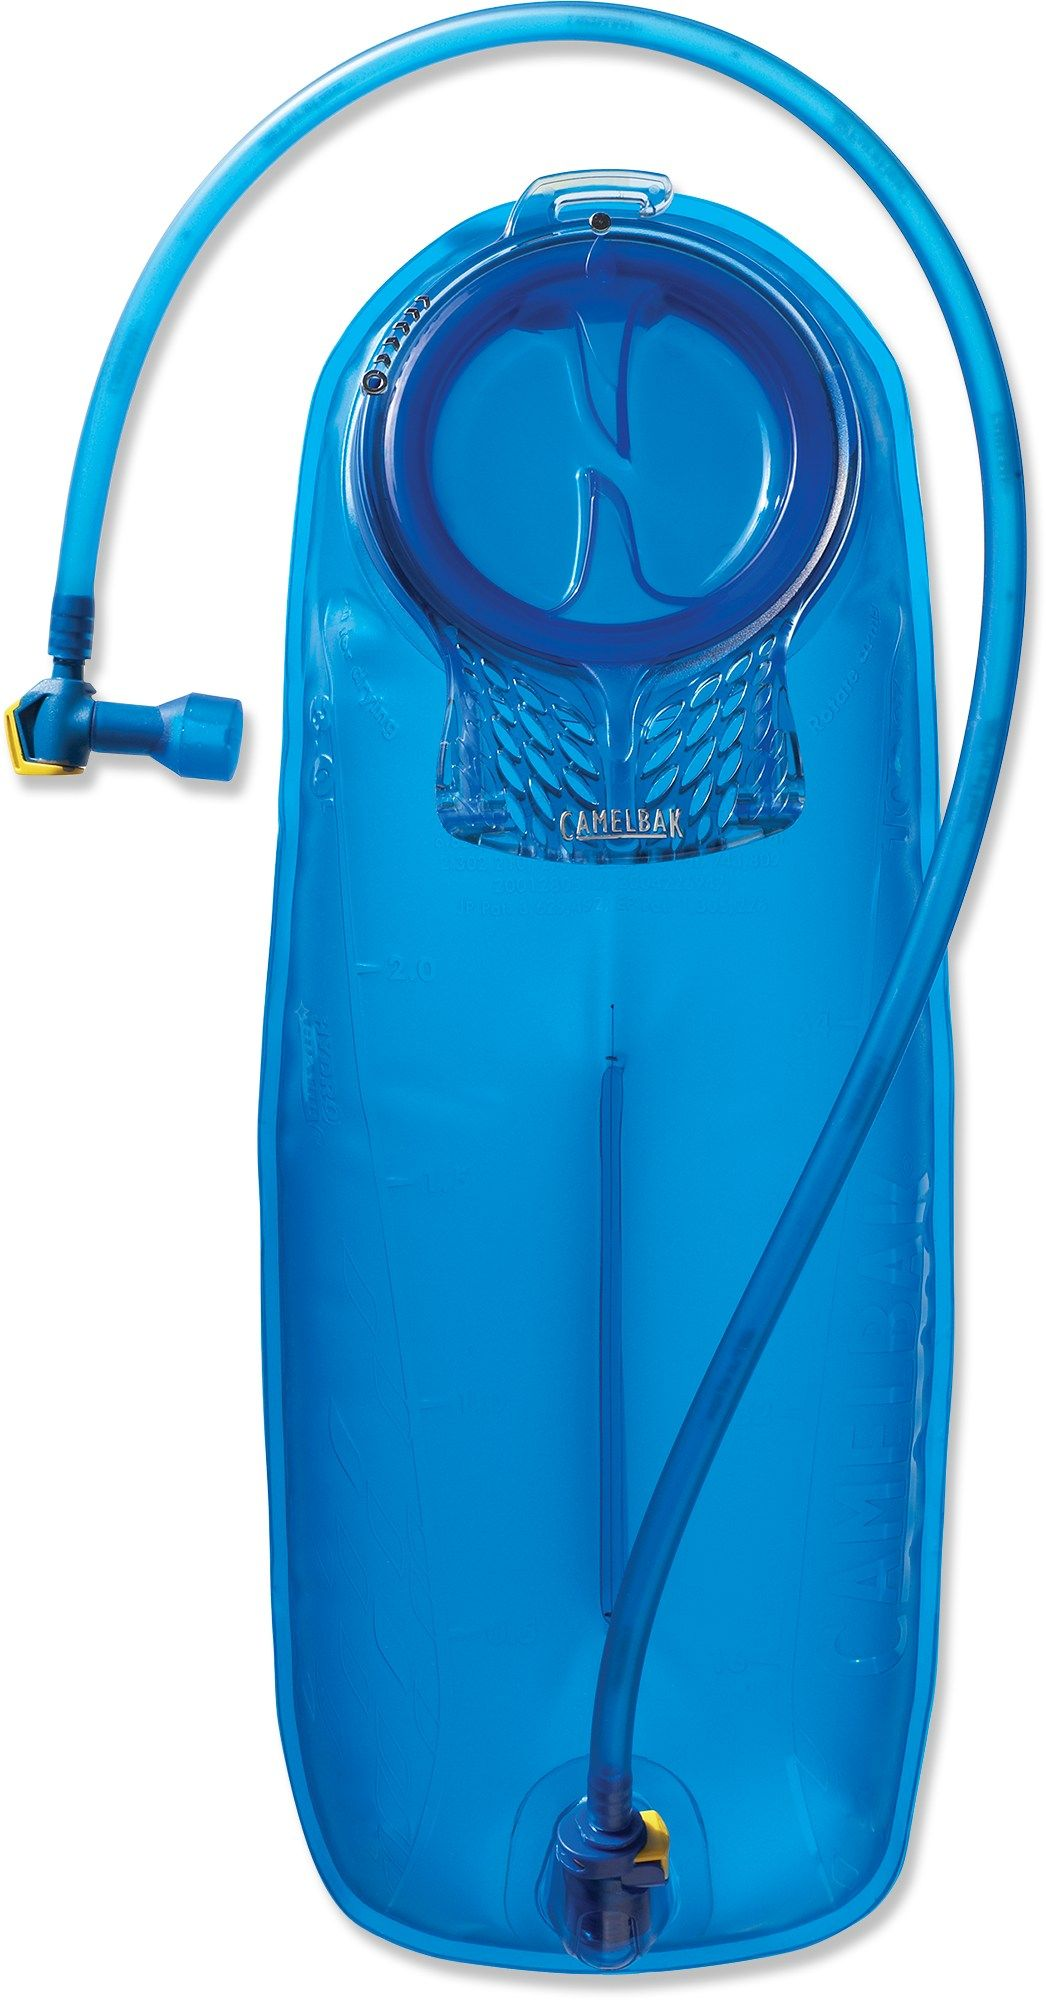 CamelBak Antidote Reservoir - 100 fl. oz.  A savior to trekkers and hikers the world over. I could swoon endlessly over the CamelBak. And I will.